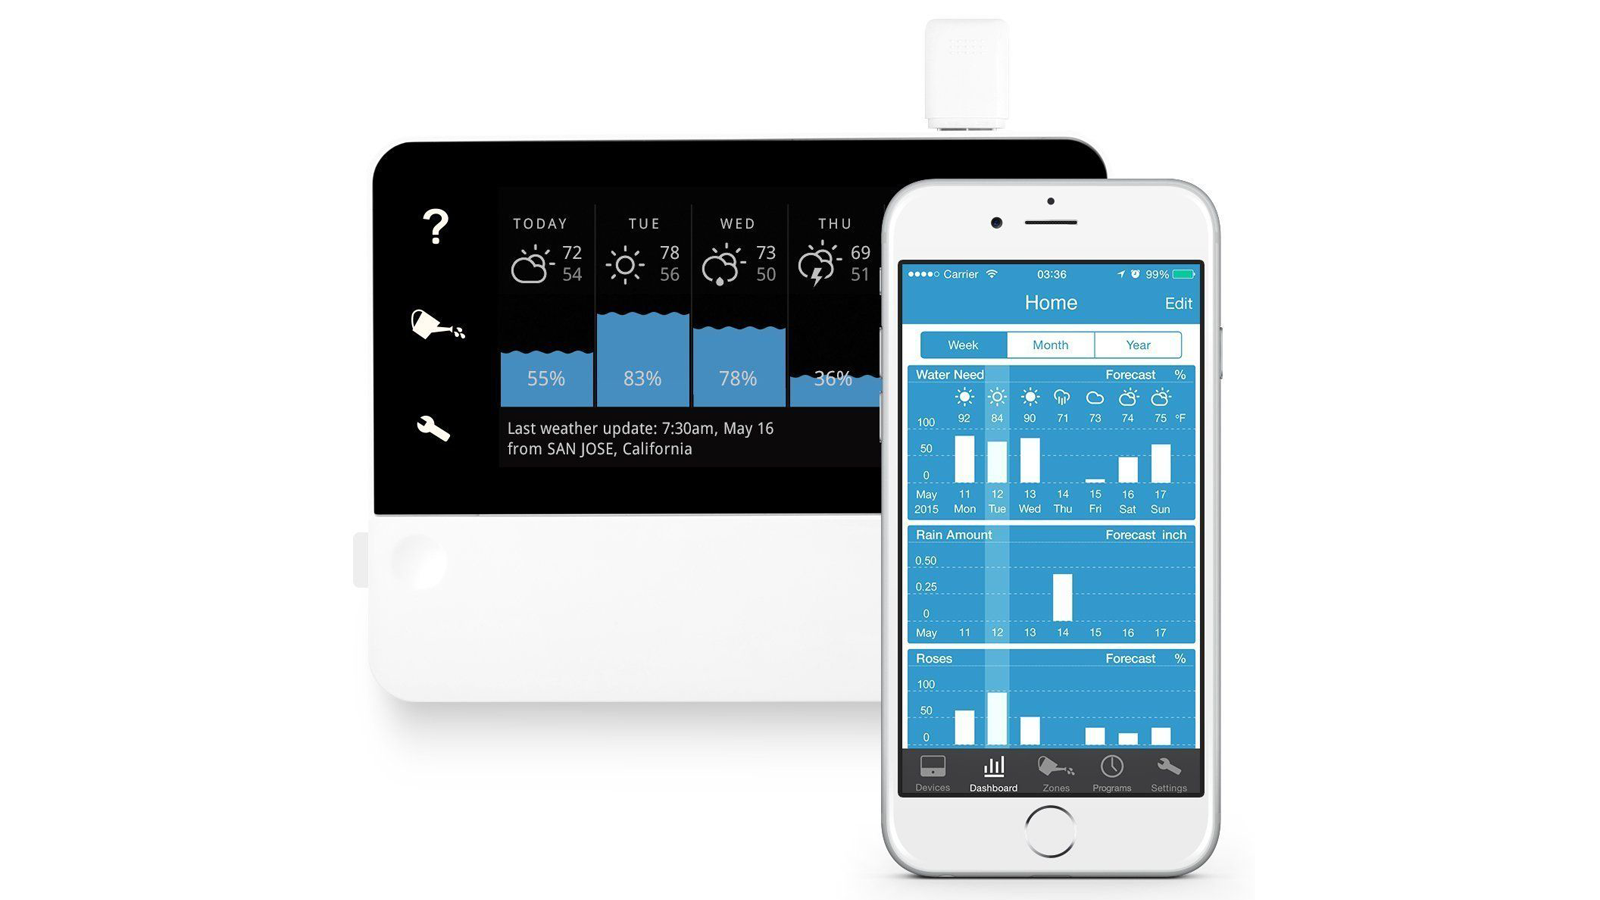 The RainMachine Touch HD-12 device and mobile companion app